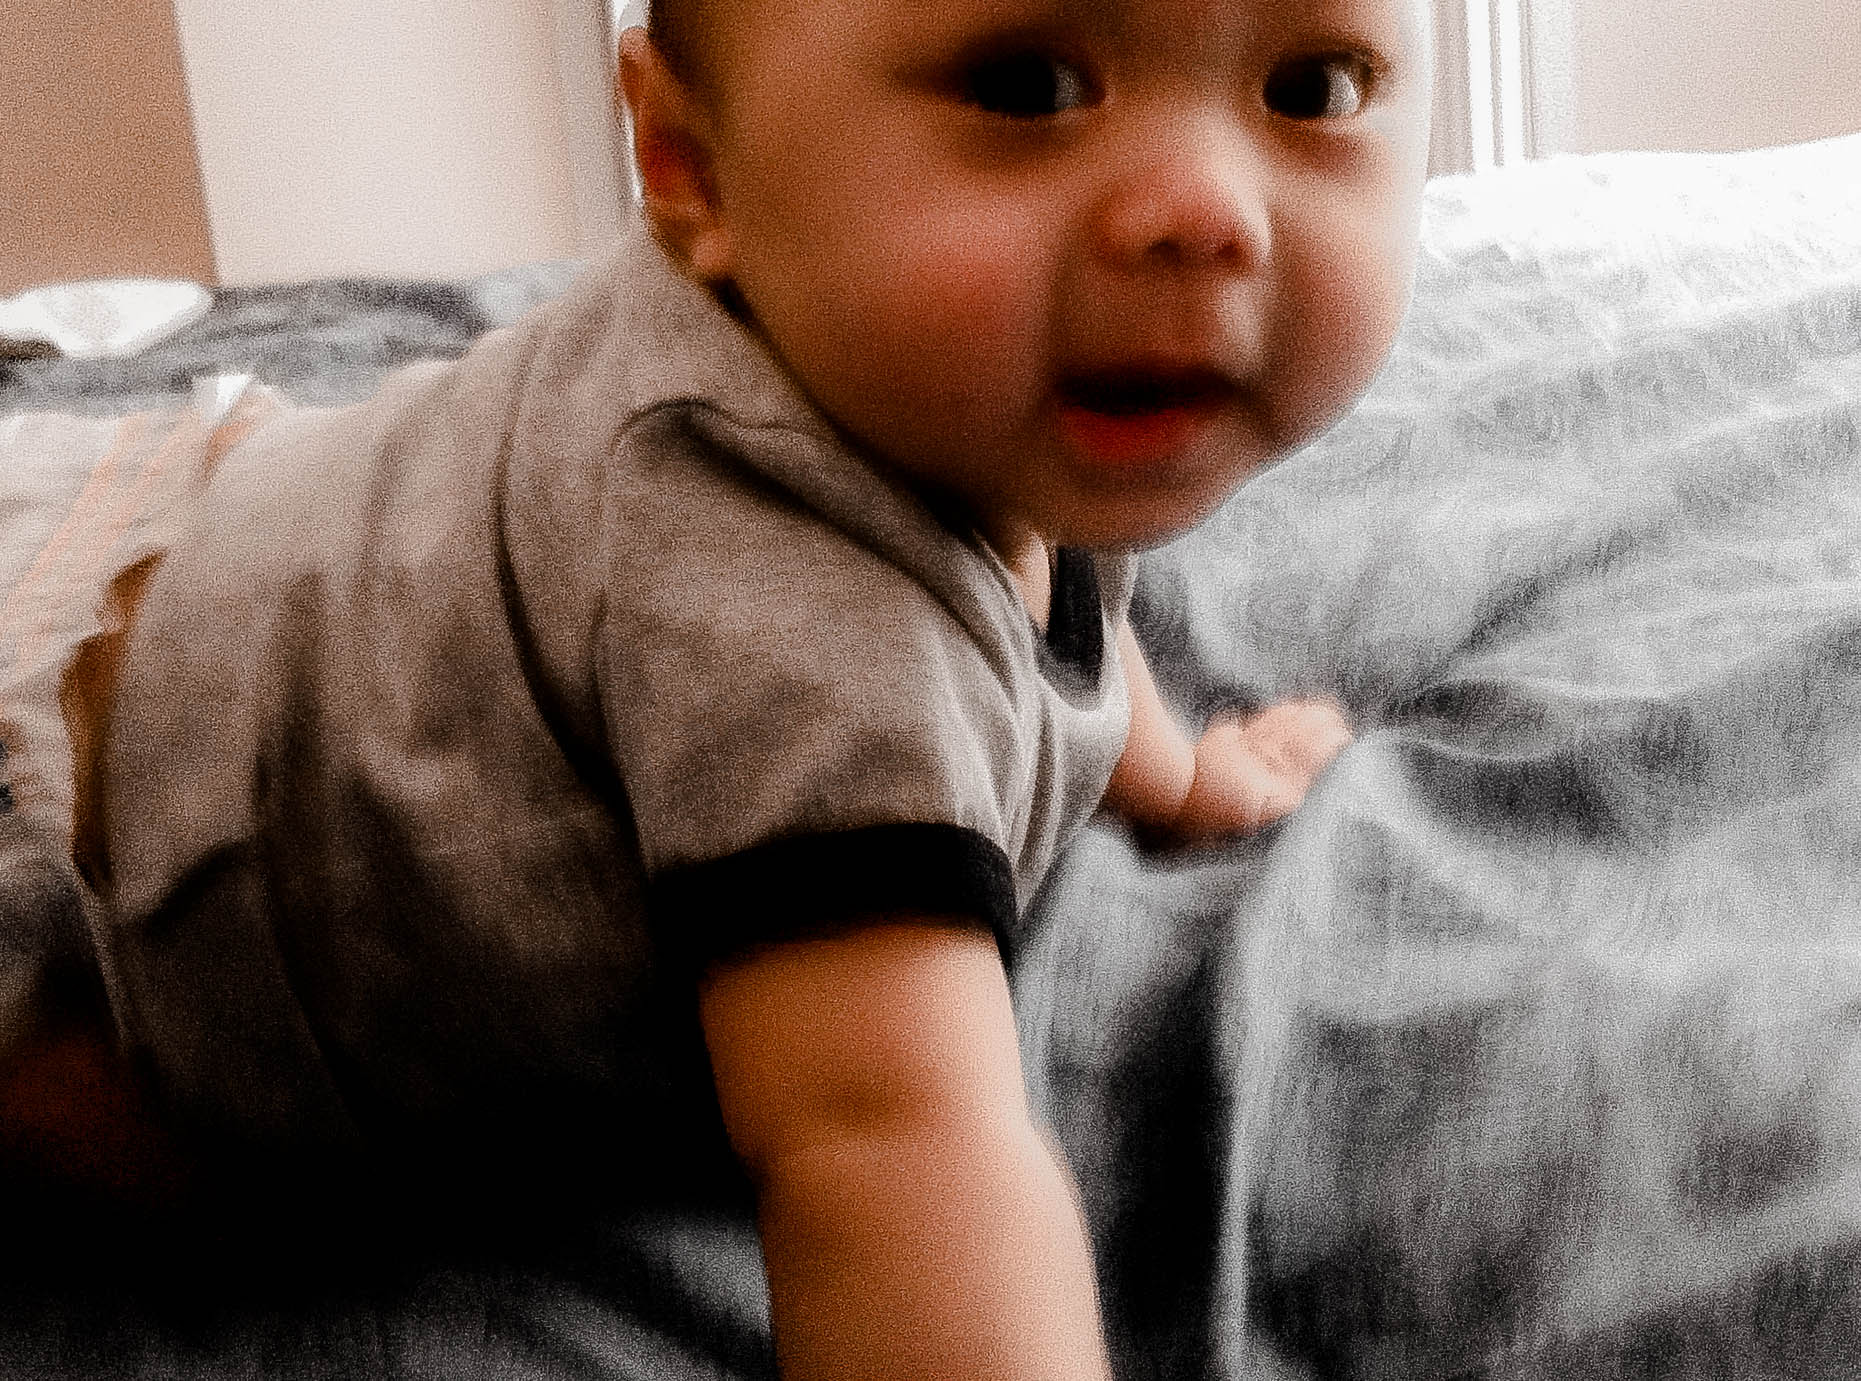 nephew essayboard heavy lightroom 4 retouched nephew image 03